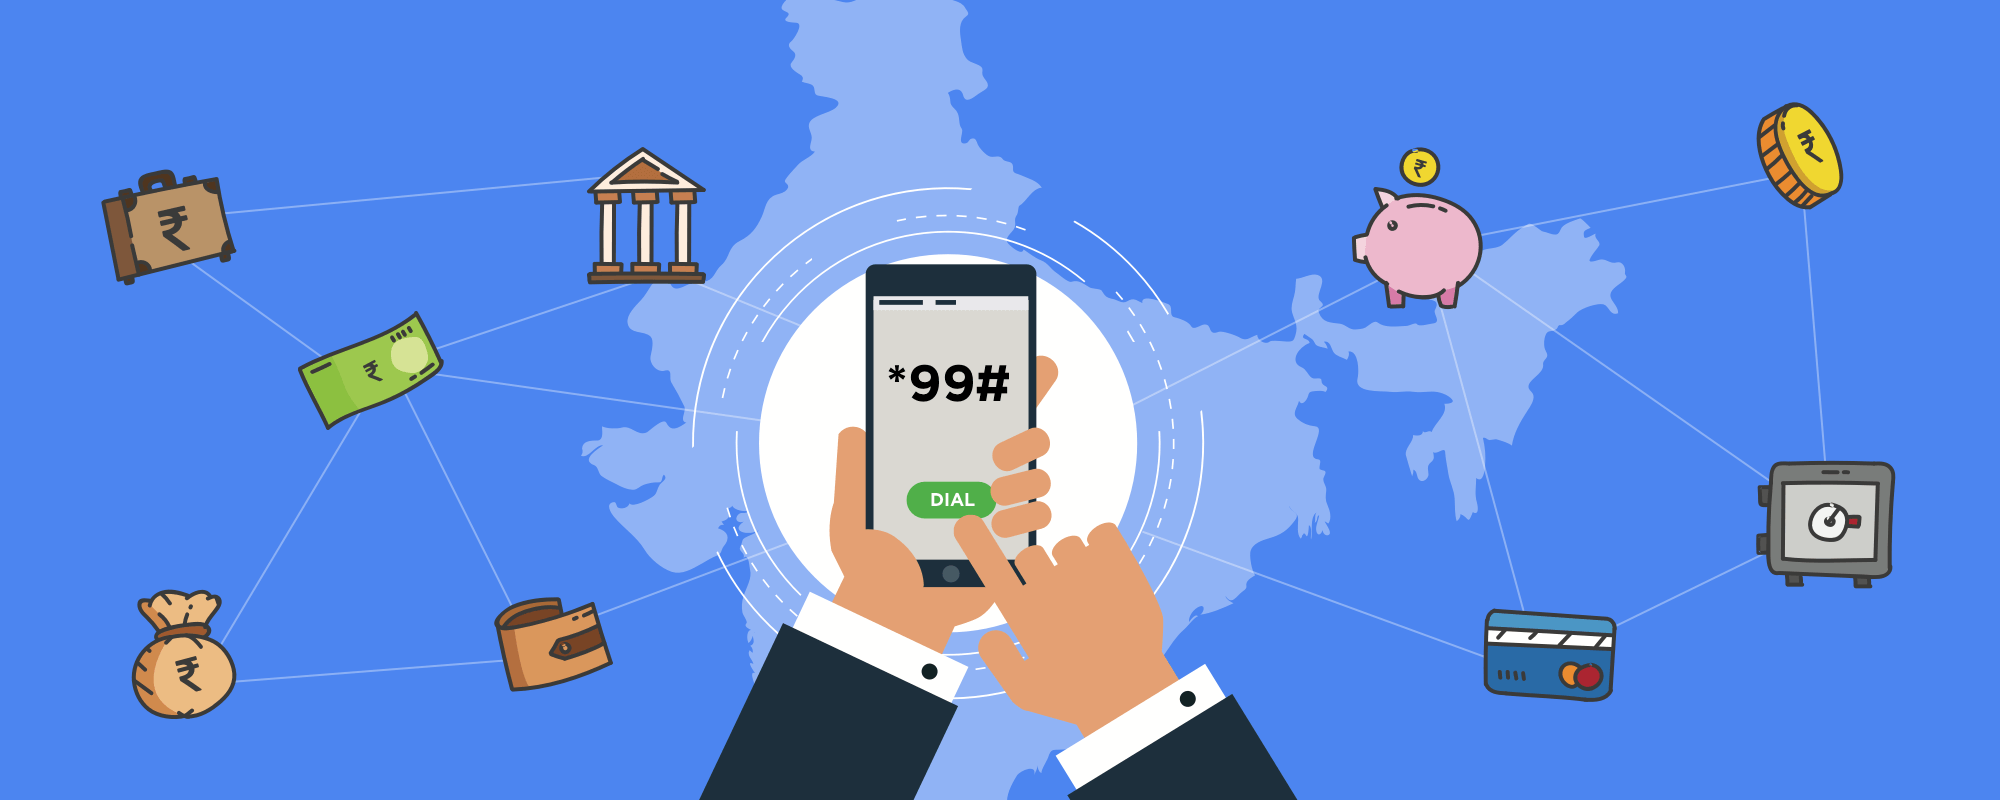 *99# - Digital banking for everyone in INDIA